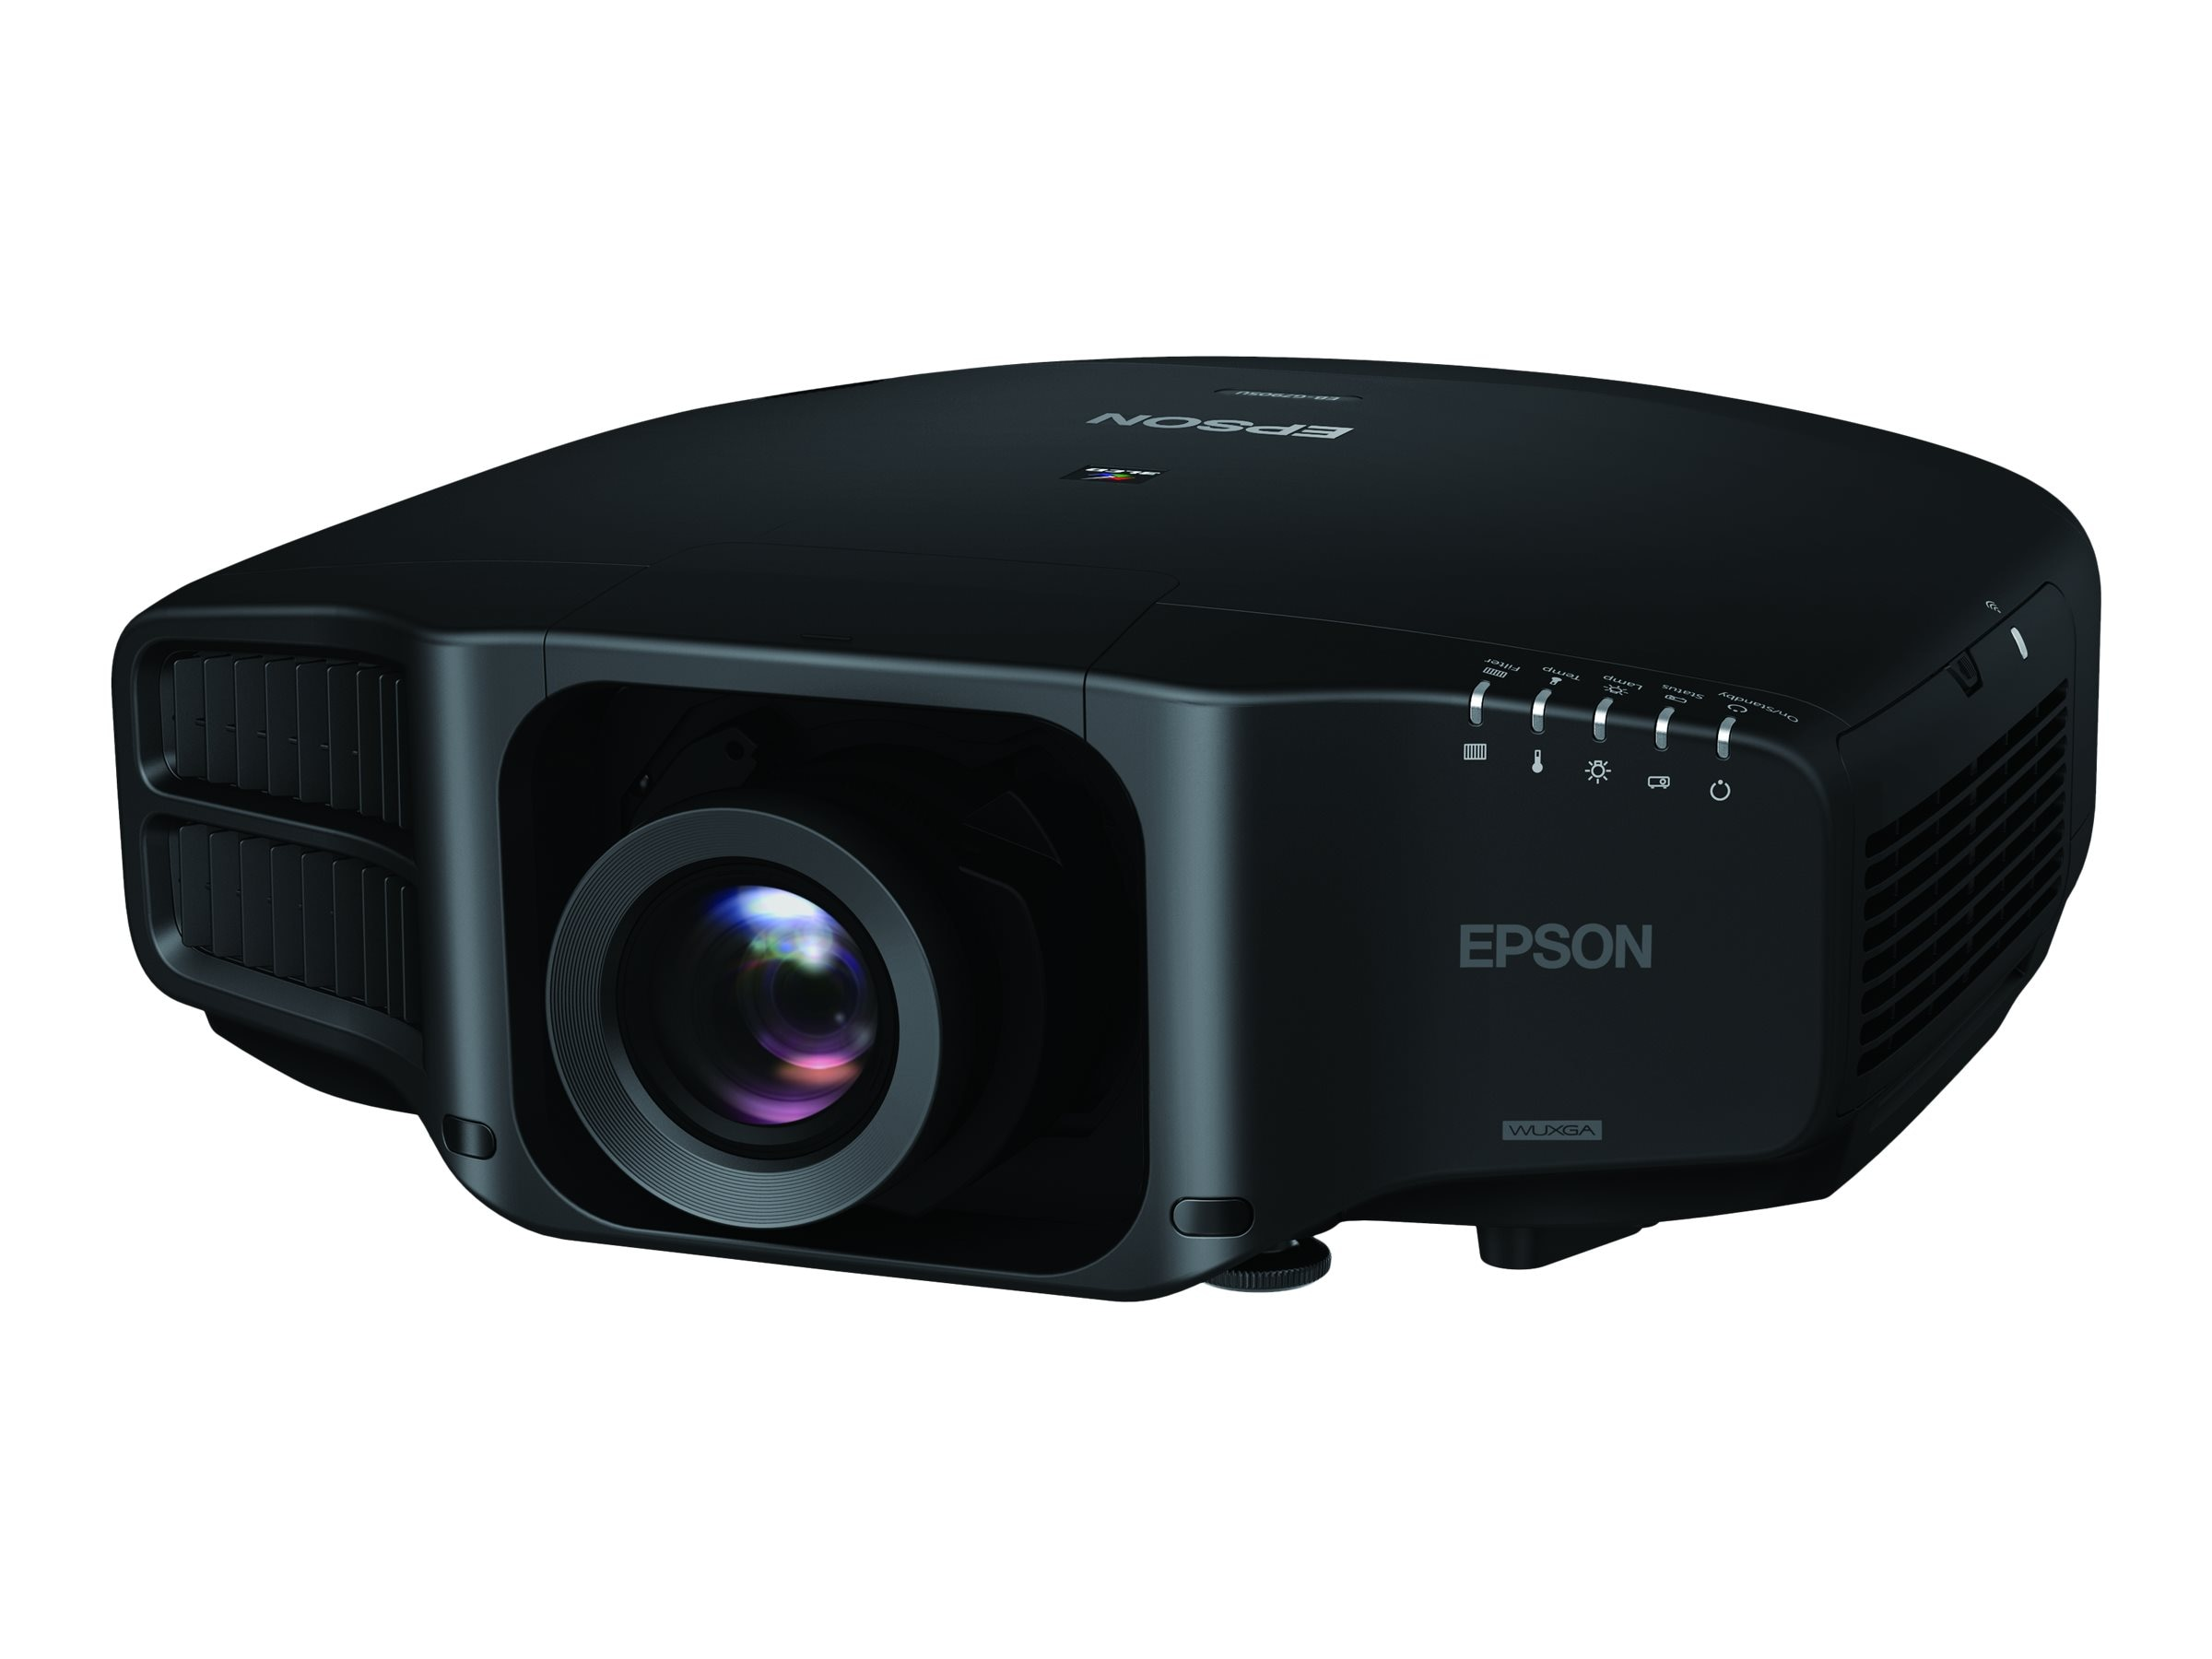 Epson Pro G7905U WUXGA 3LCD Projector with Standard Lens, 7000 Lumens, Black